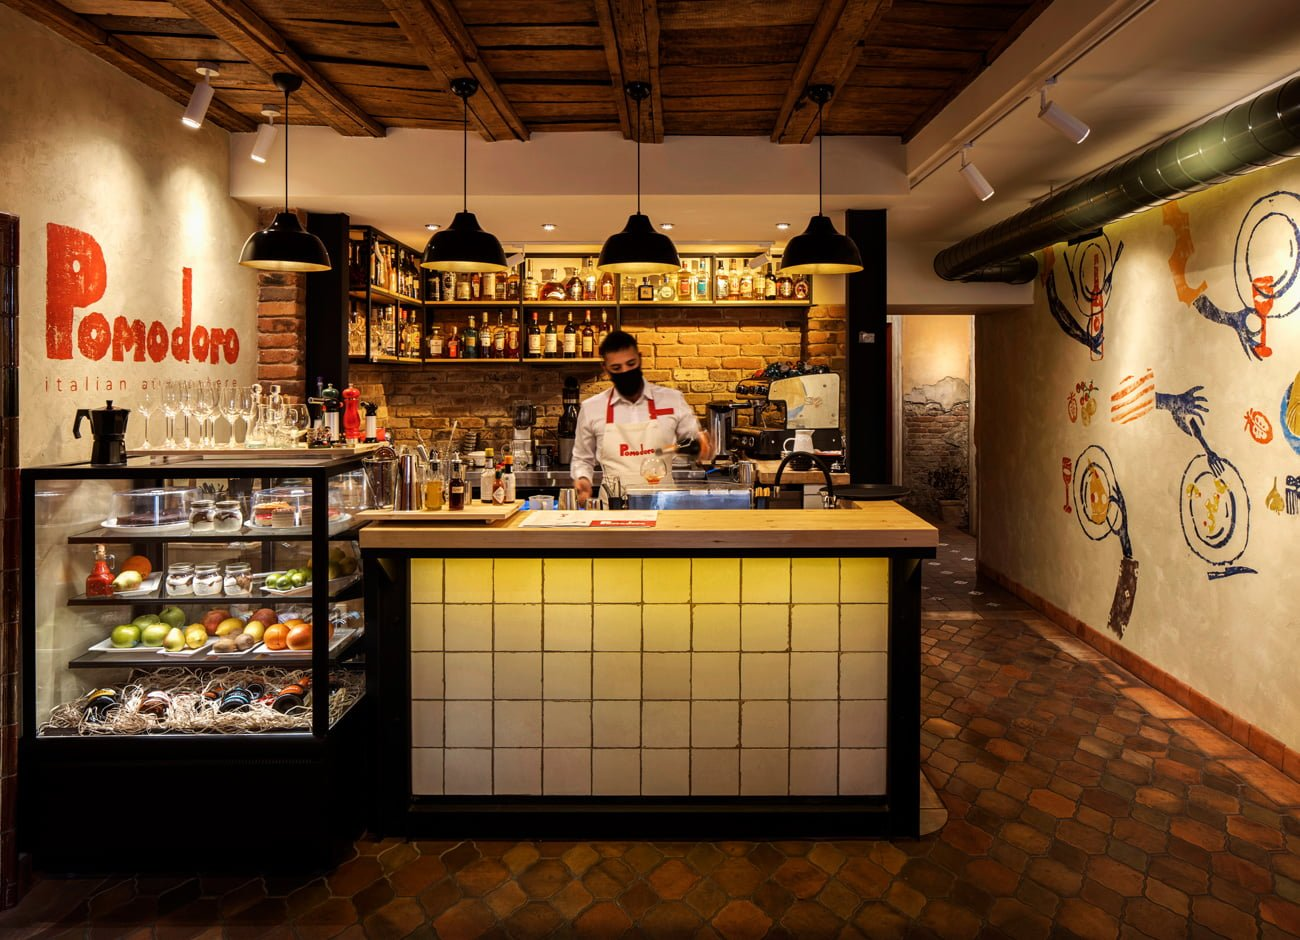 photo of a bar with a bar counter and a barista at the entrance to the POMODORO restaurant